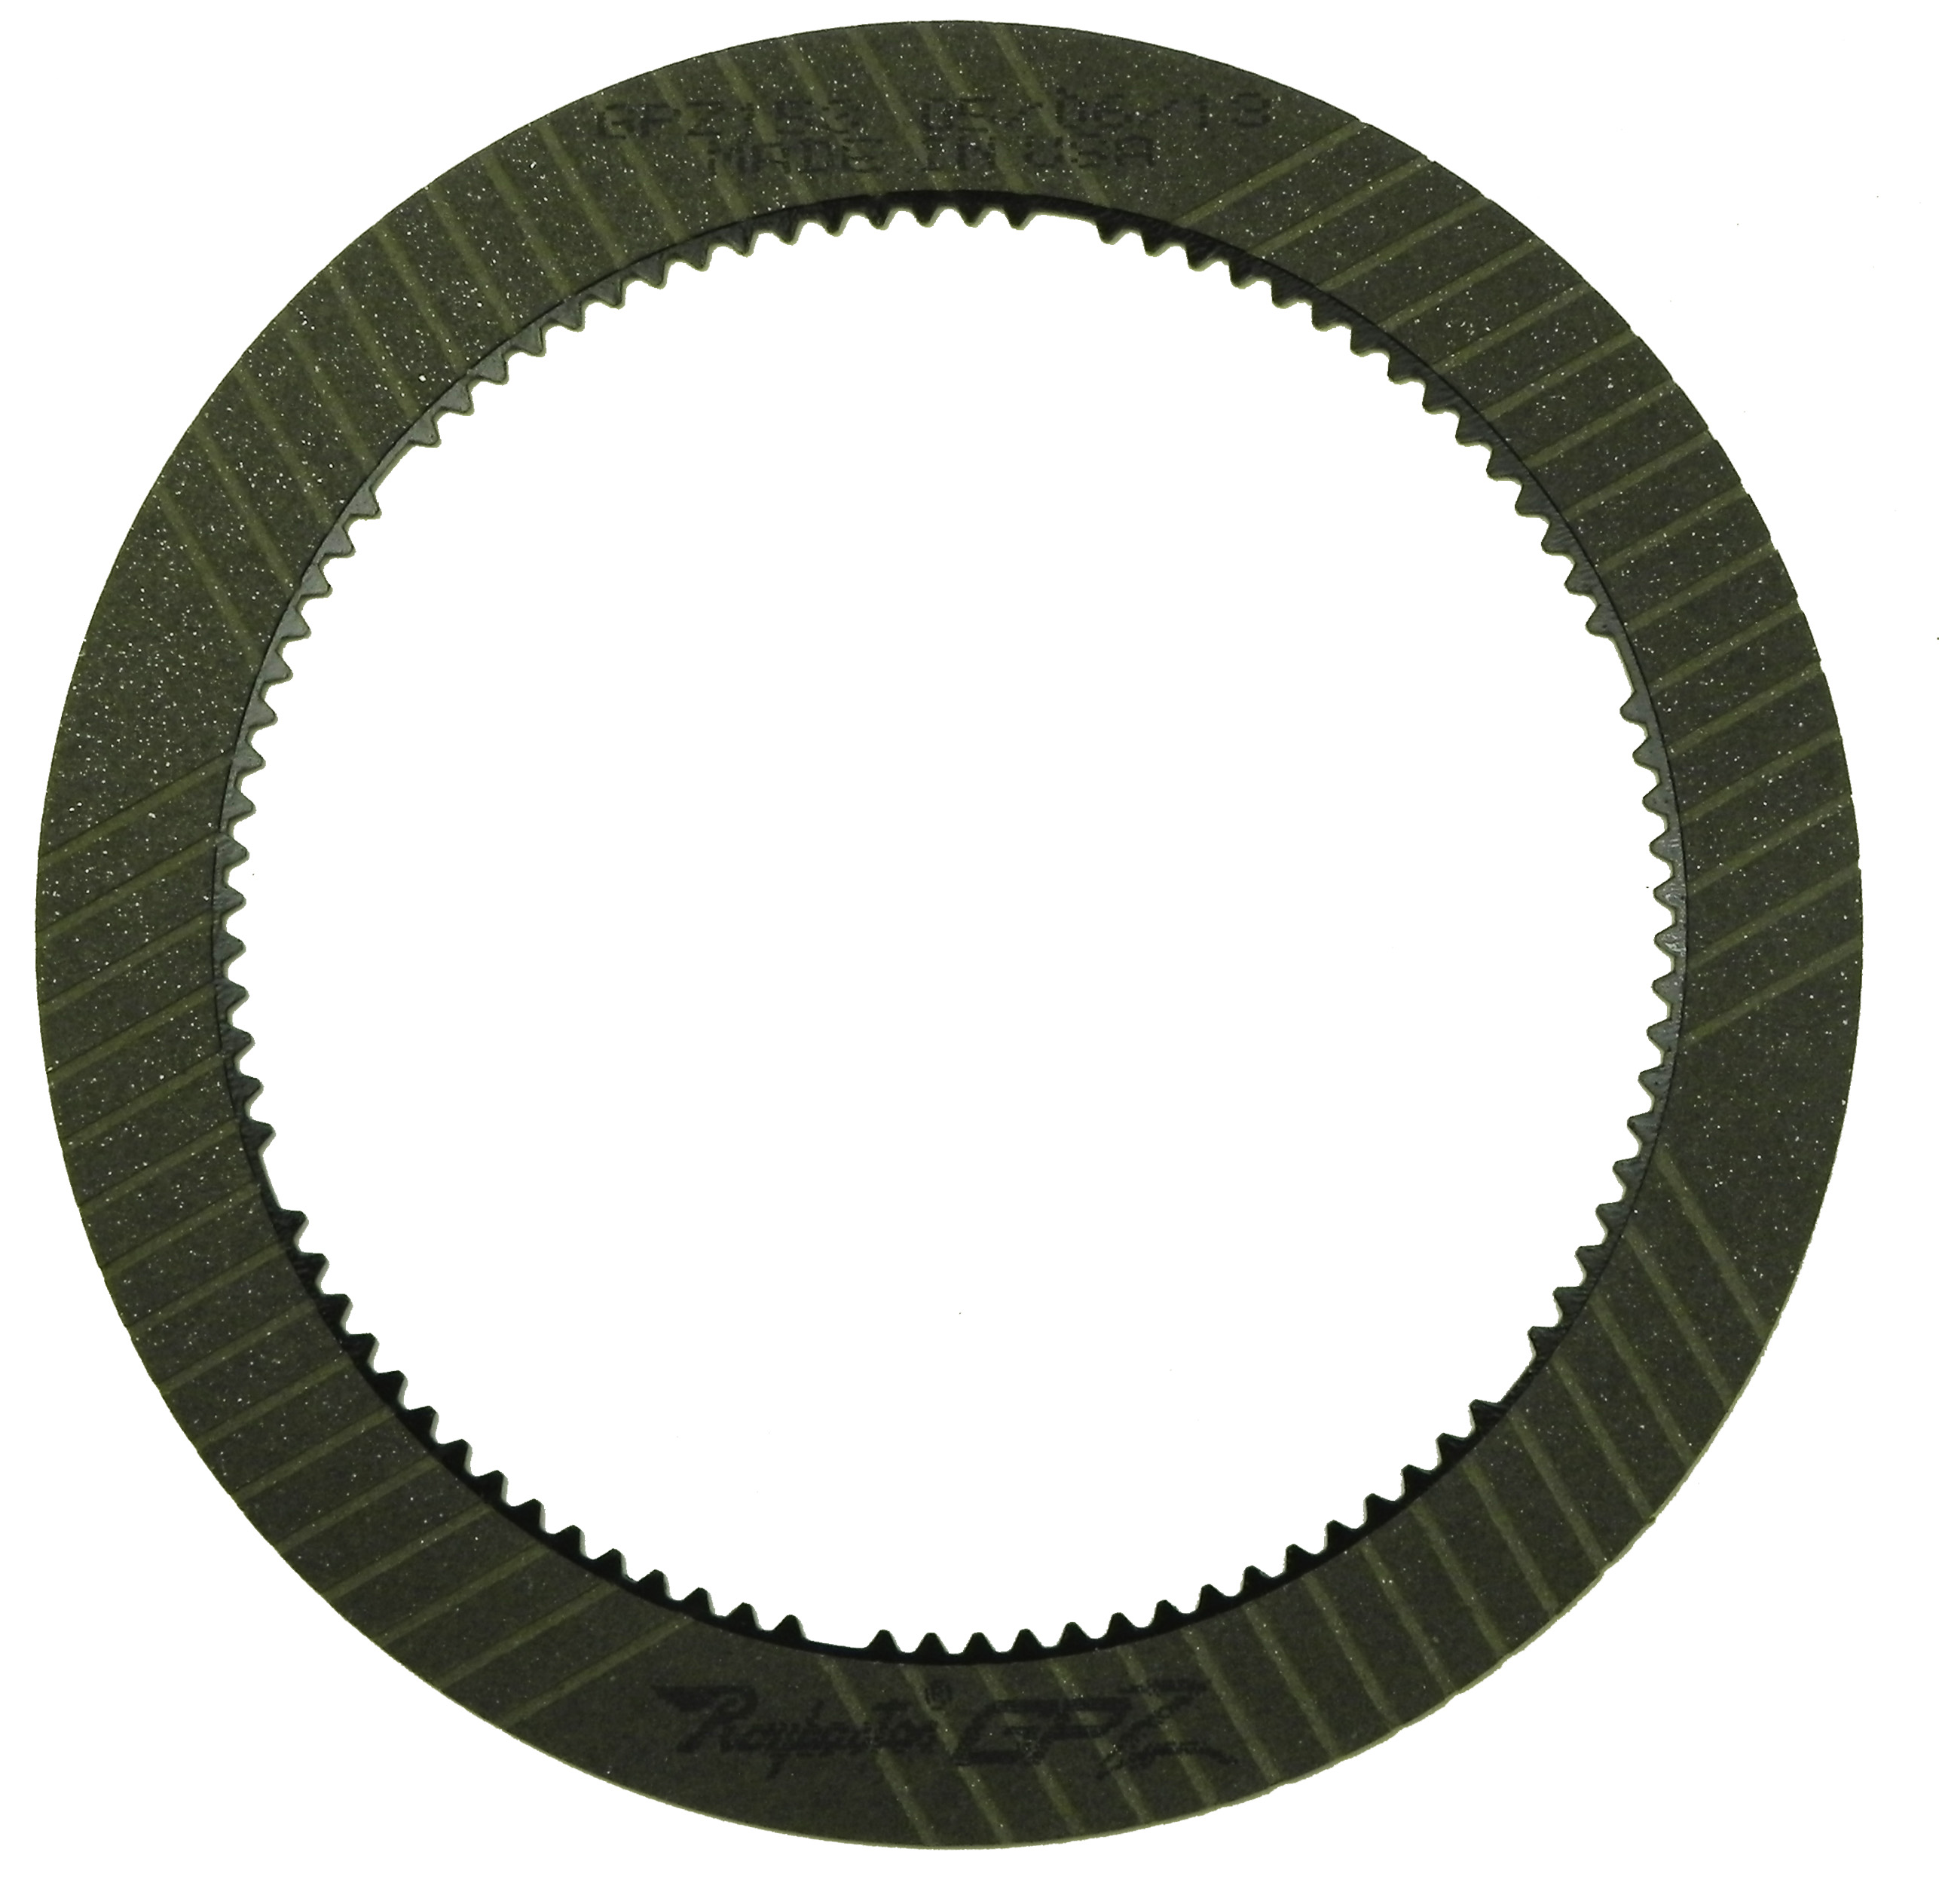 C6, E4OD, 4R100 GPZ Friction Clutch Plate